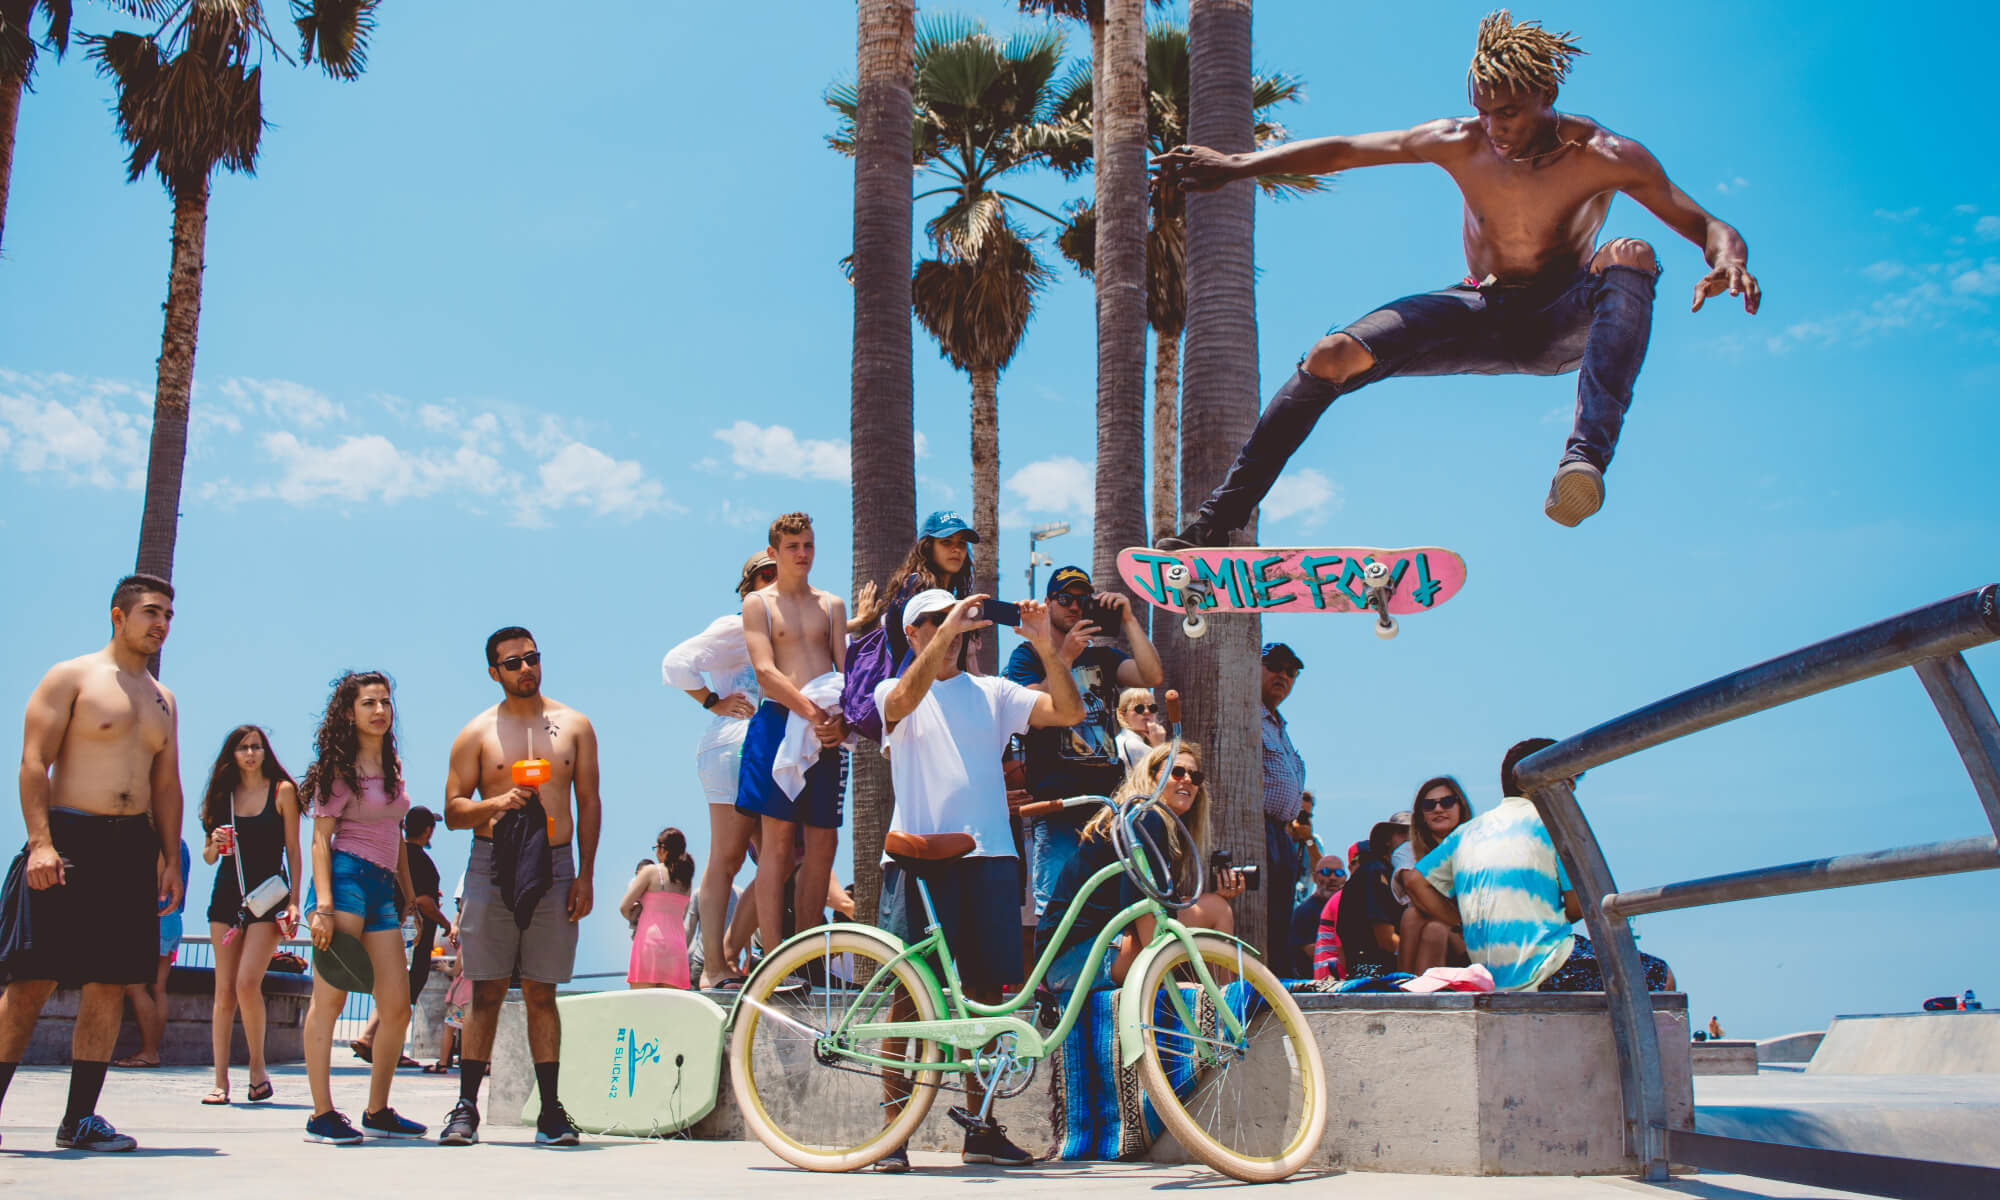 Venice Beach in Los Angeles